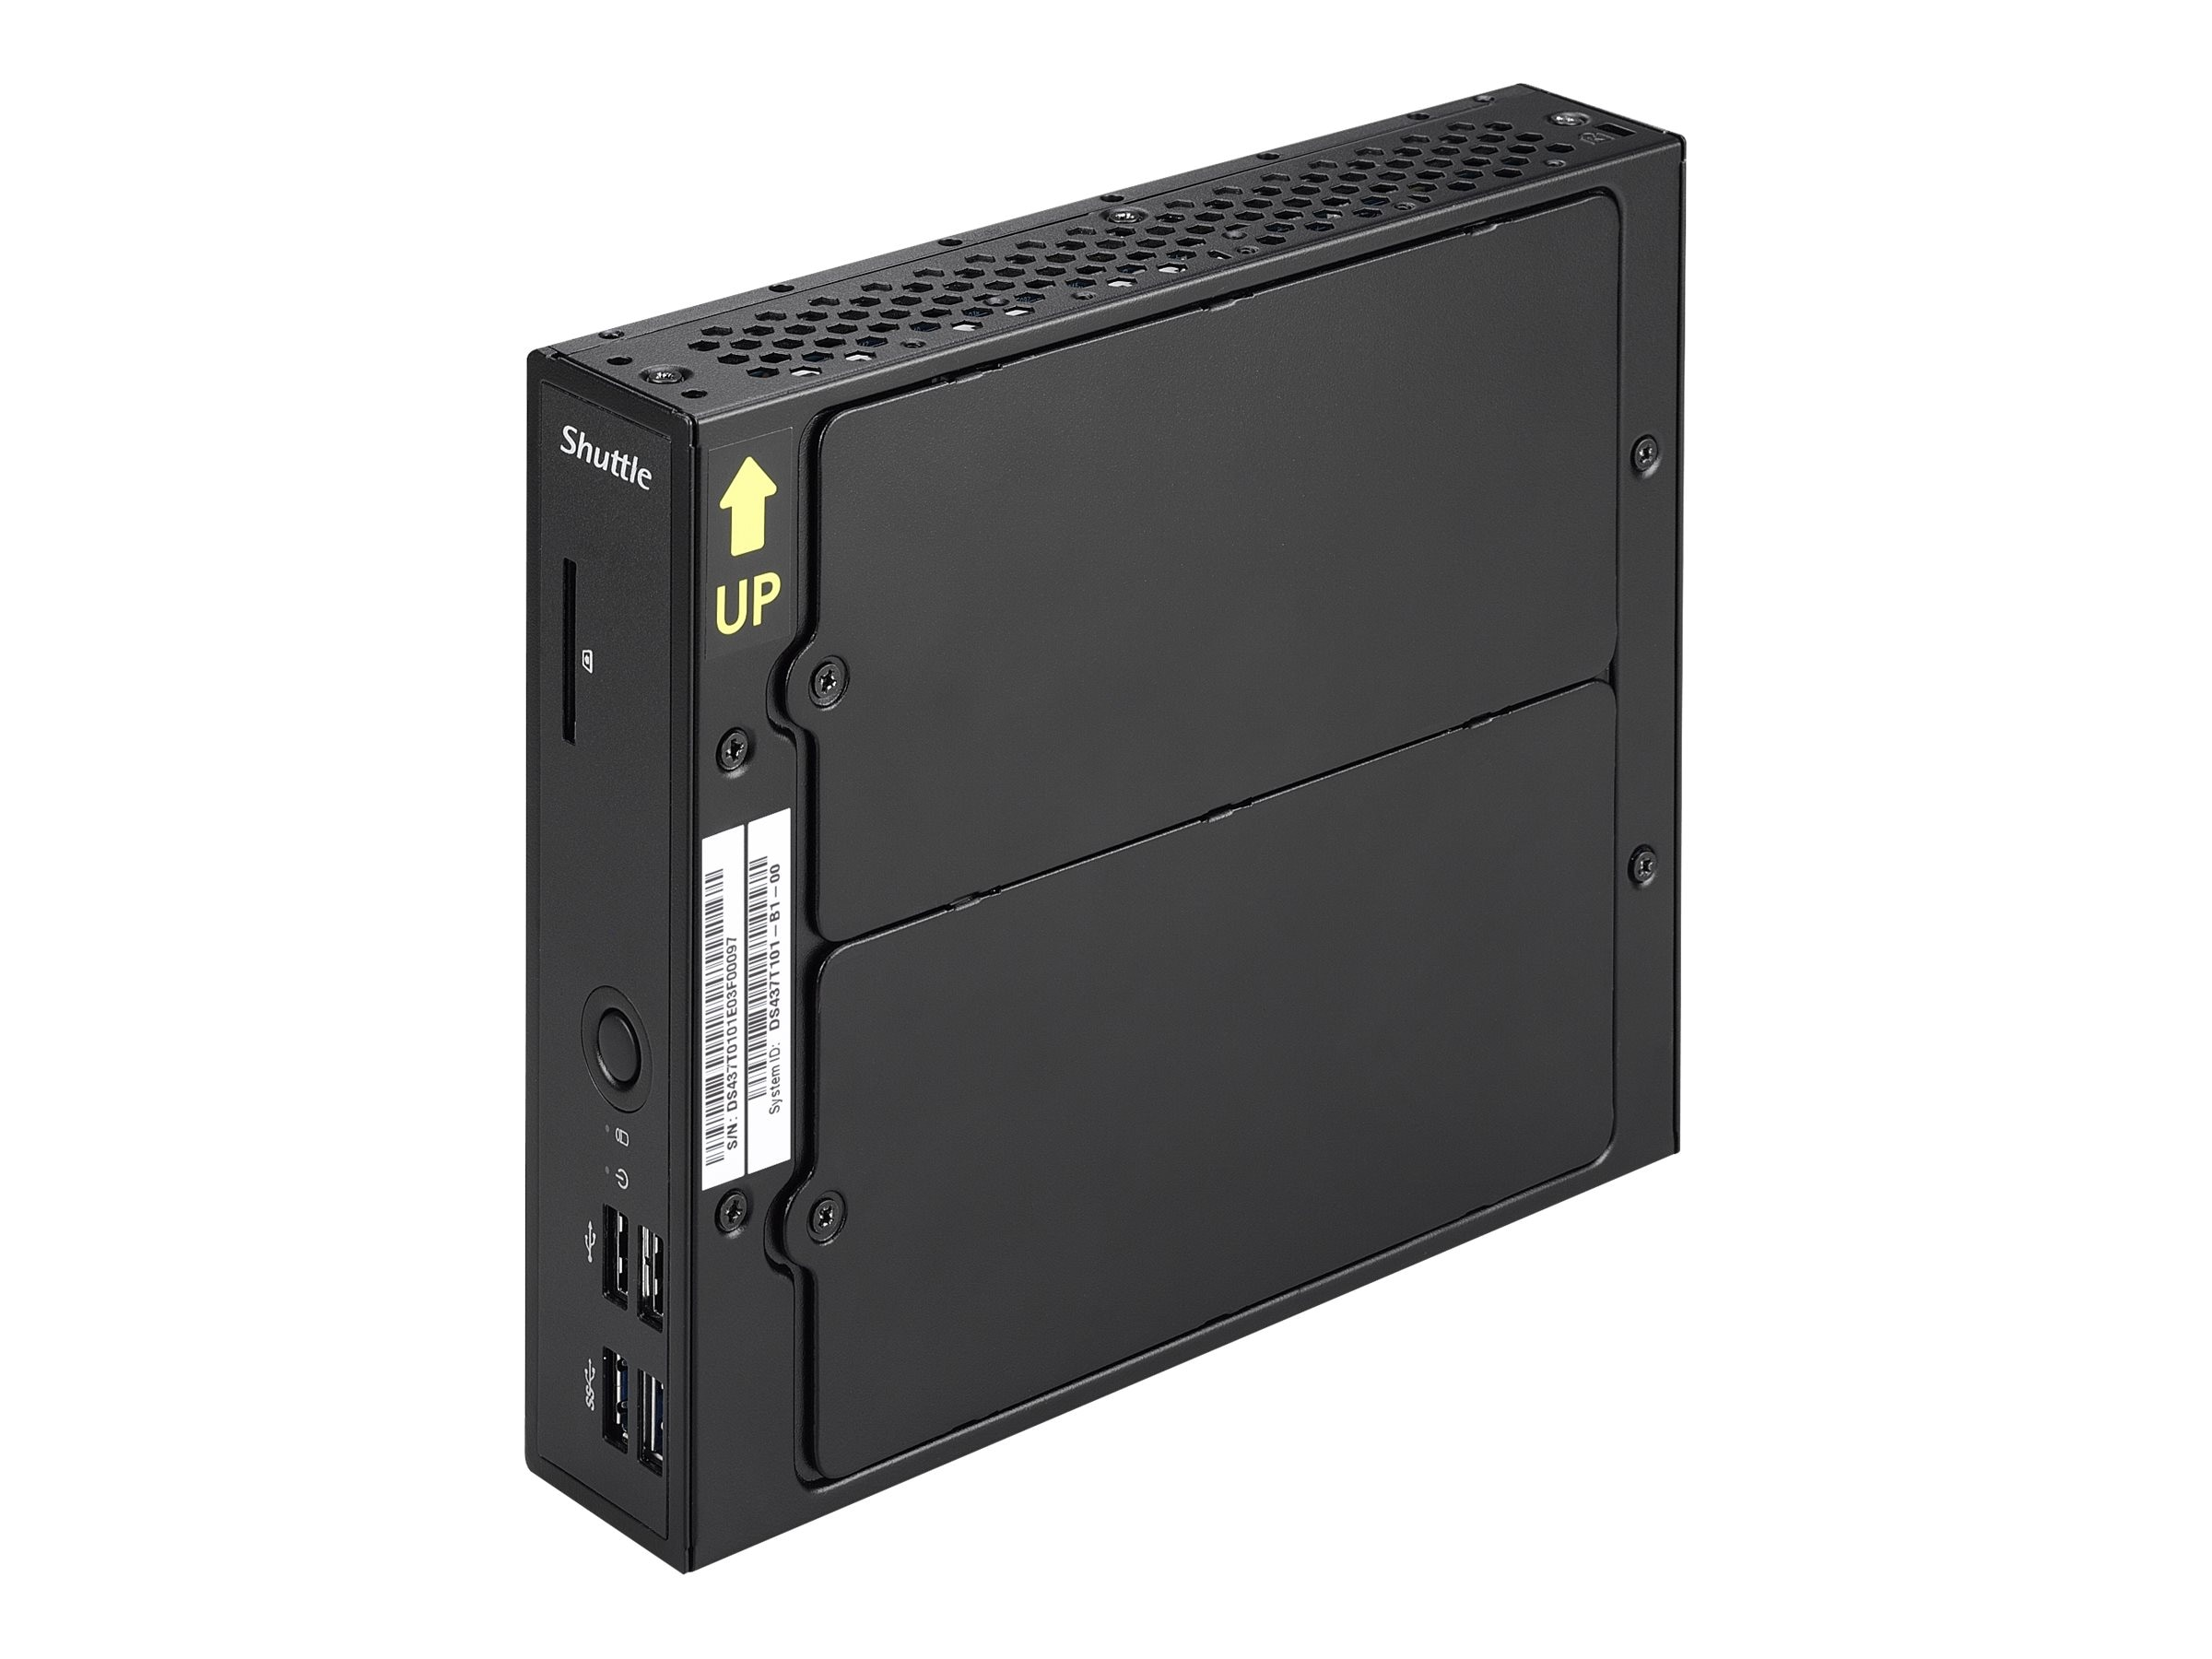 Shuttle Barebones, Desktop USFF Slim Celeron DC 1037U 1.8GHz Max.8GB DDR3 1x2.5 Bay 65W Fanless NoOS, Black, DS437T